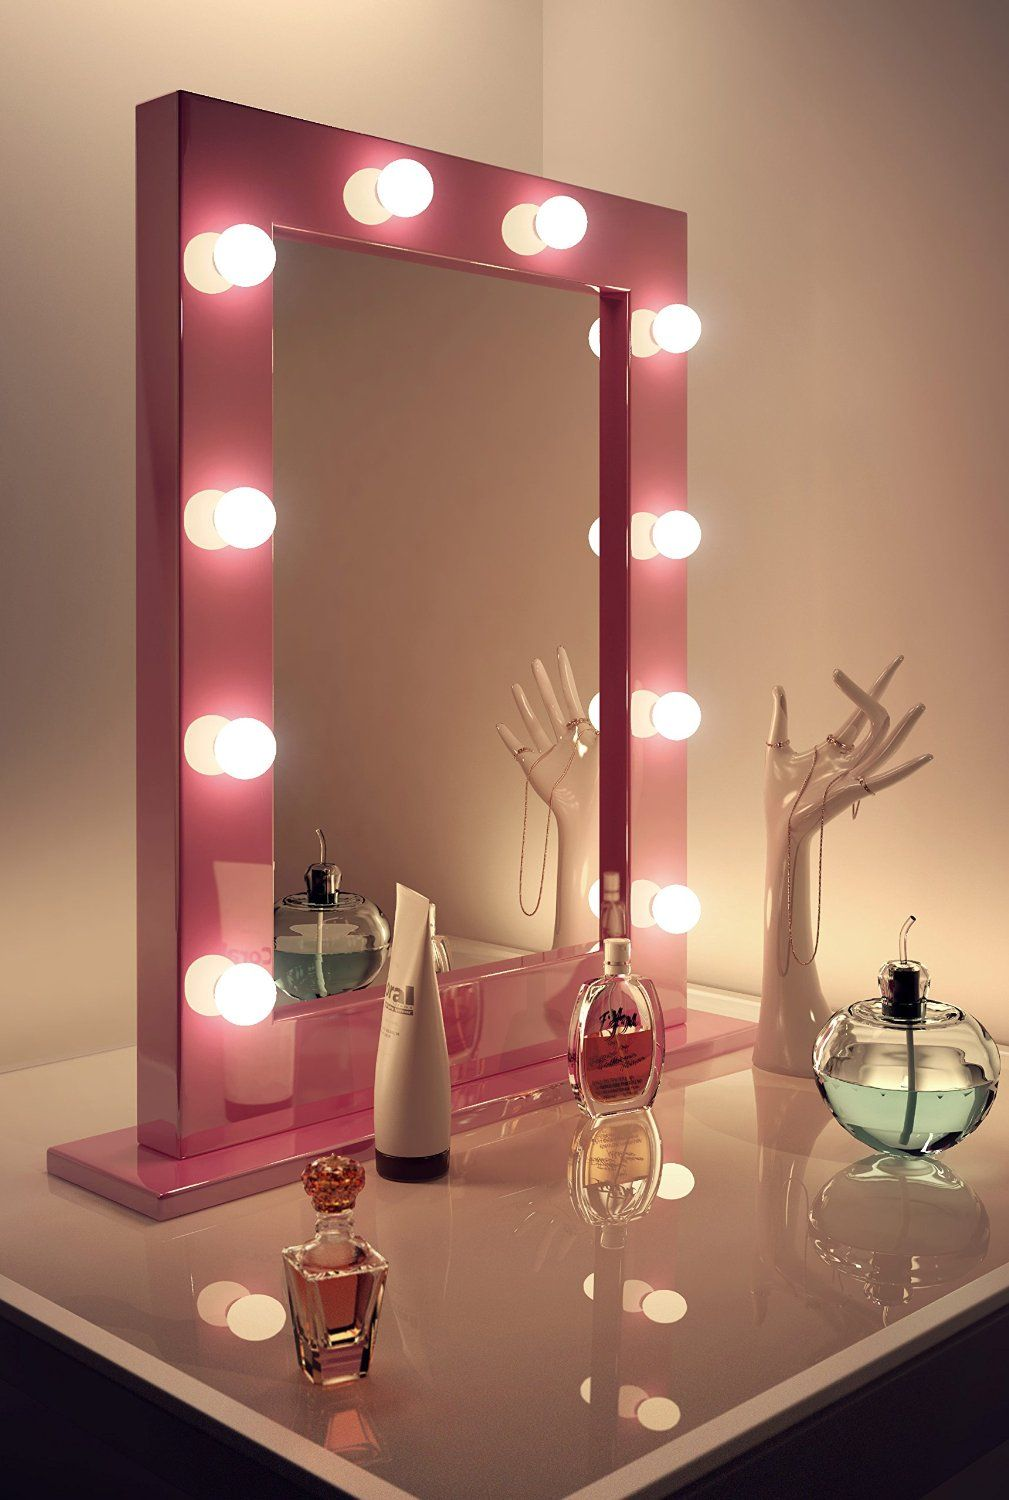 Pink Hollywood Make Up Theatre Dressing Room Mirror k153